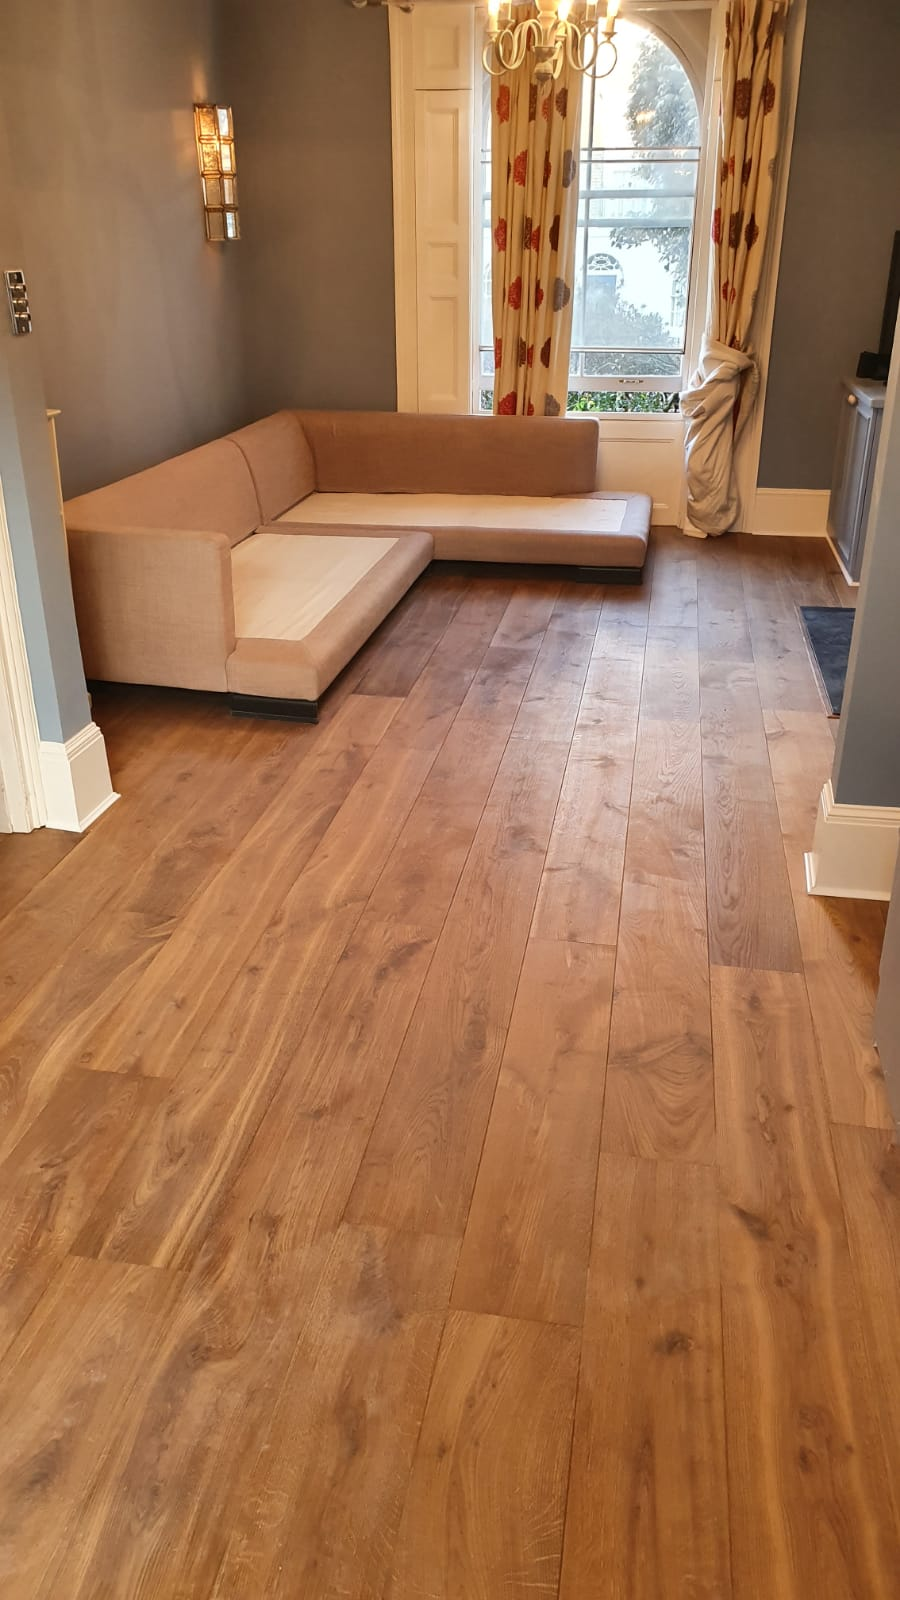 Staki Smoked & Oiled Wood Flooring Installation 2